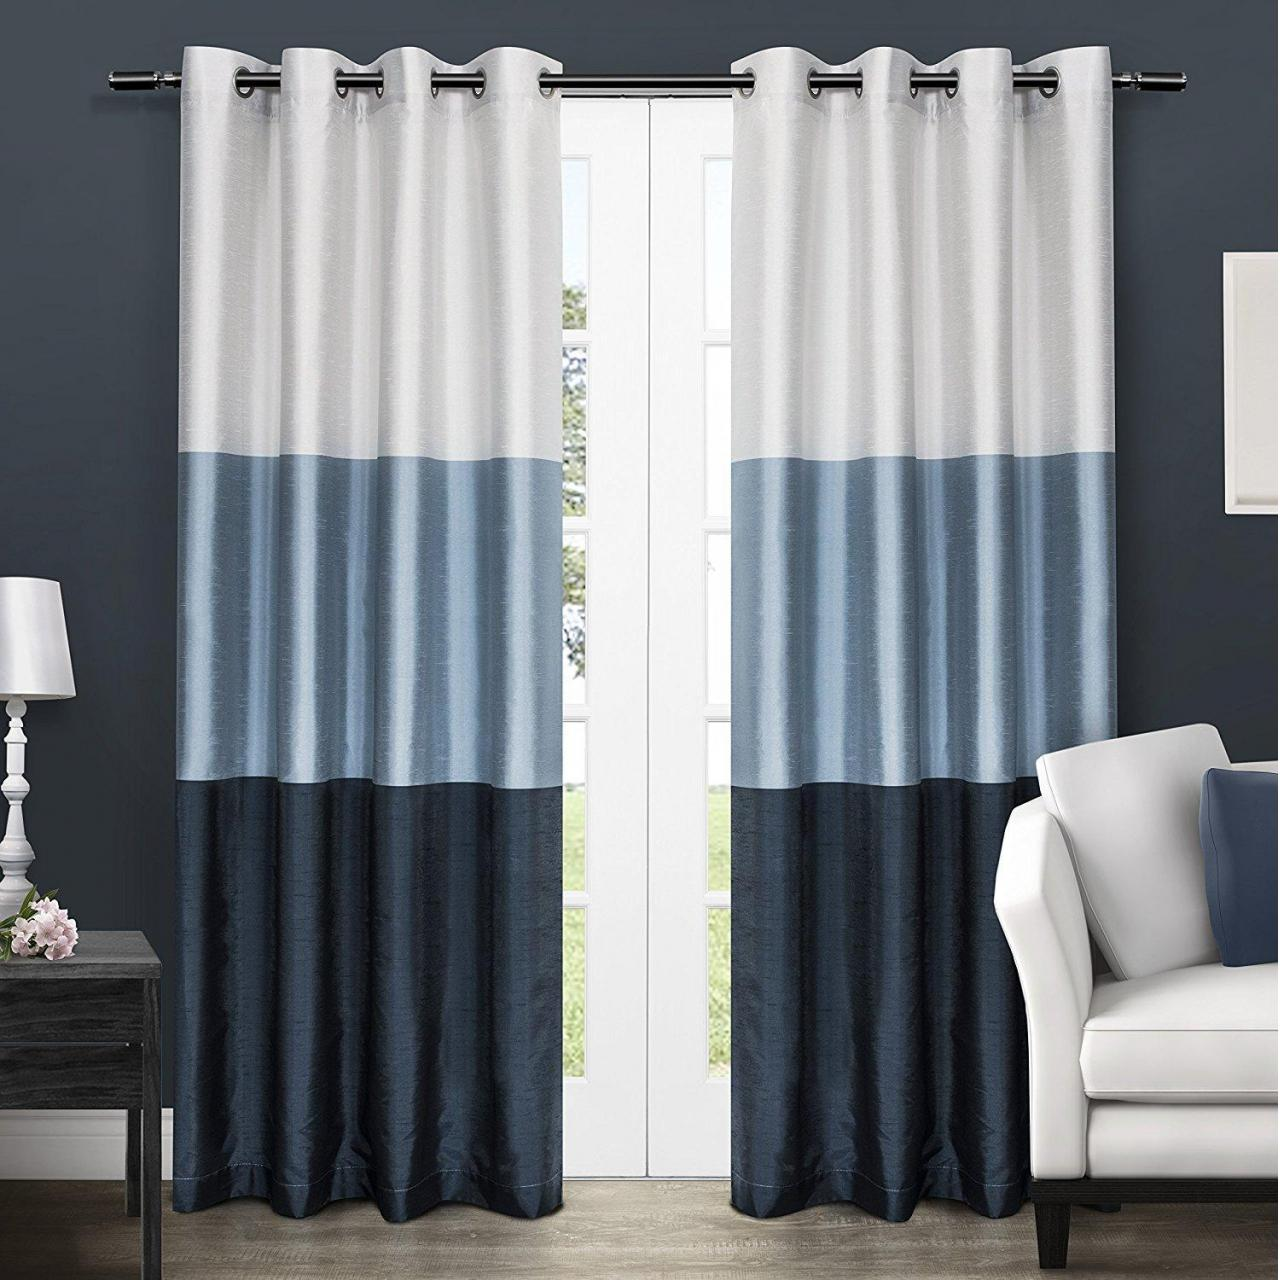 Buy cheap Chateau Striped Faux Silk Window Curtain Panel Pair with Grommet Top product